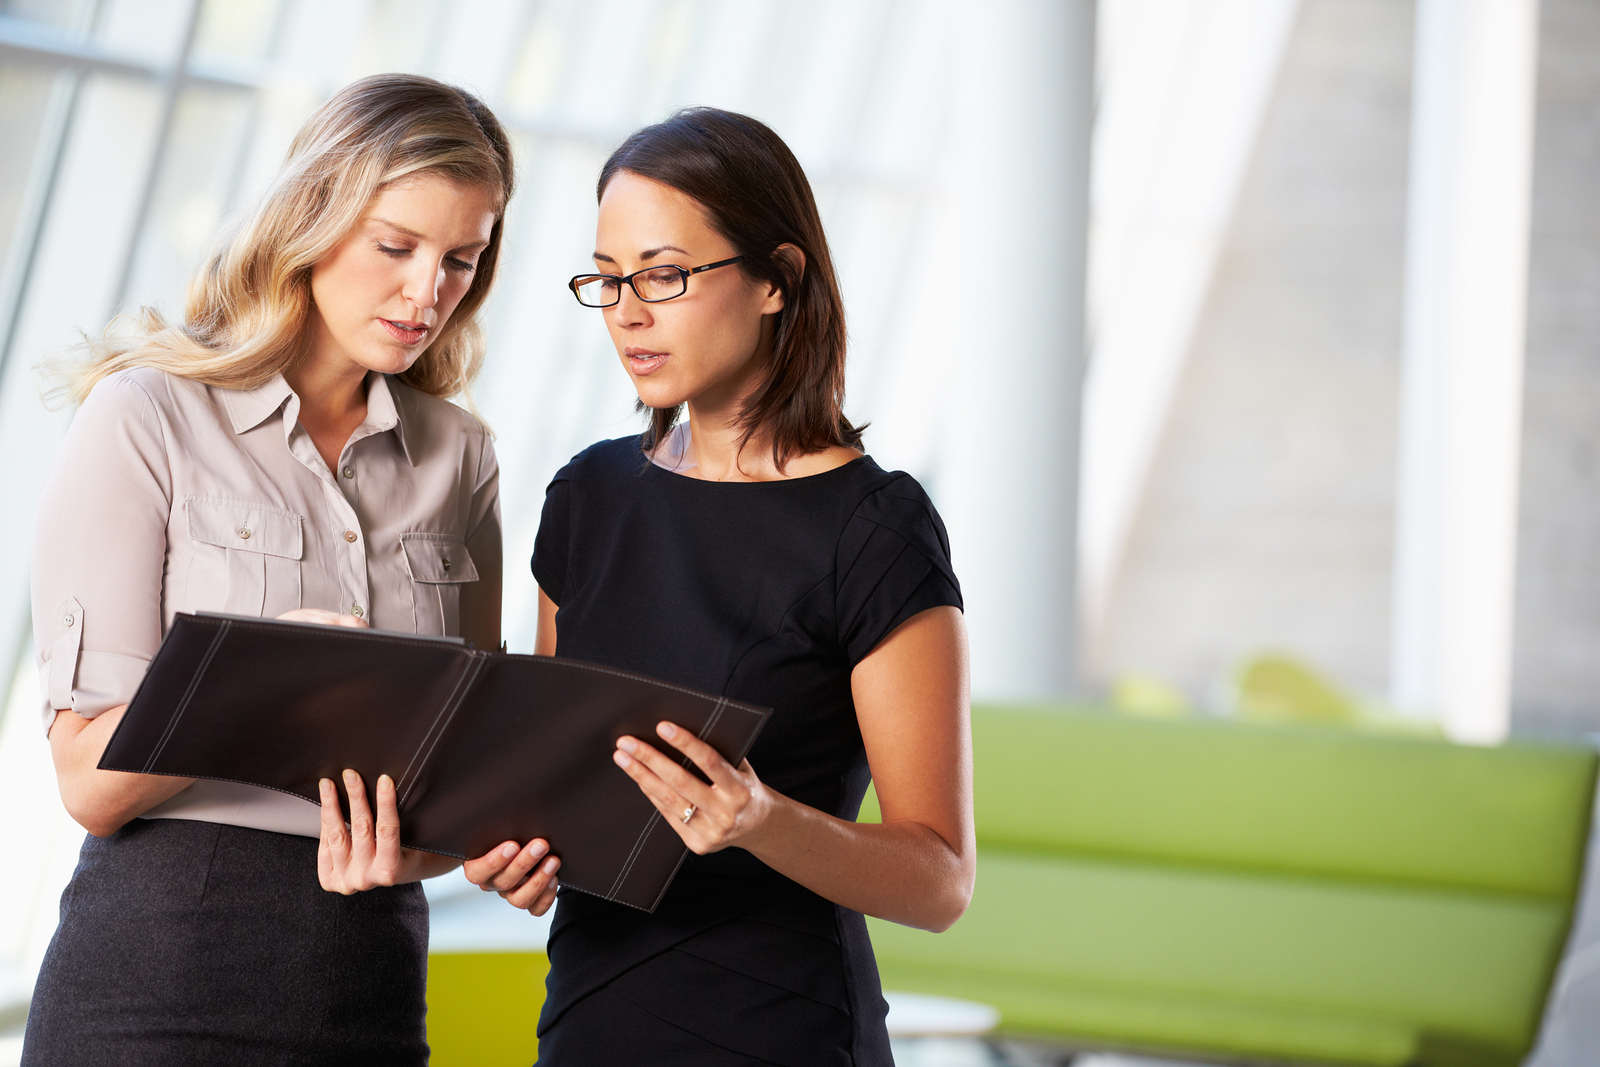 mentor women Mentorship and sponsorship are key drivers of success, yet women can have a harder time finding mentors and sponsors, especially ones with influence the good news is that we can mentor.